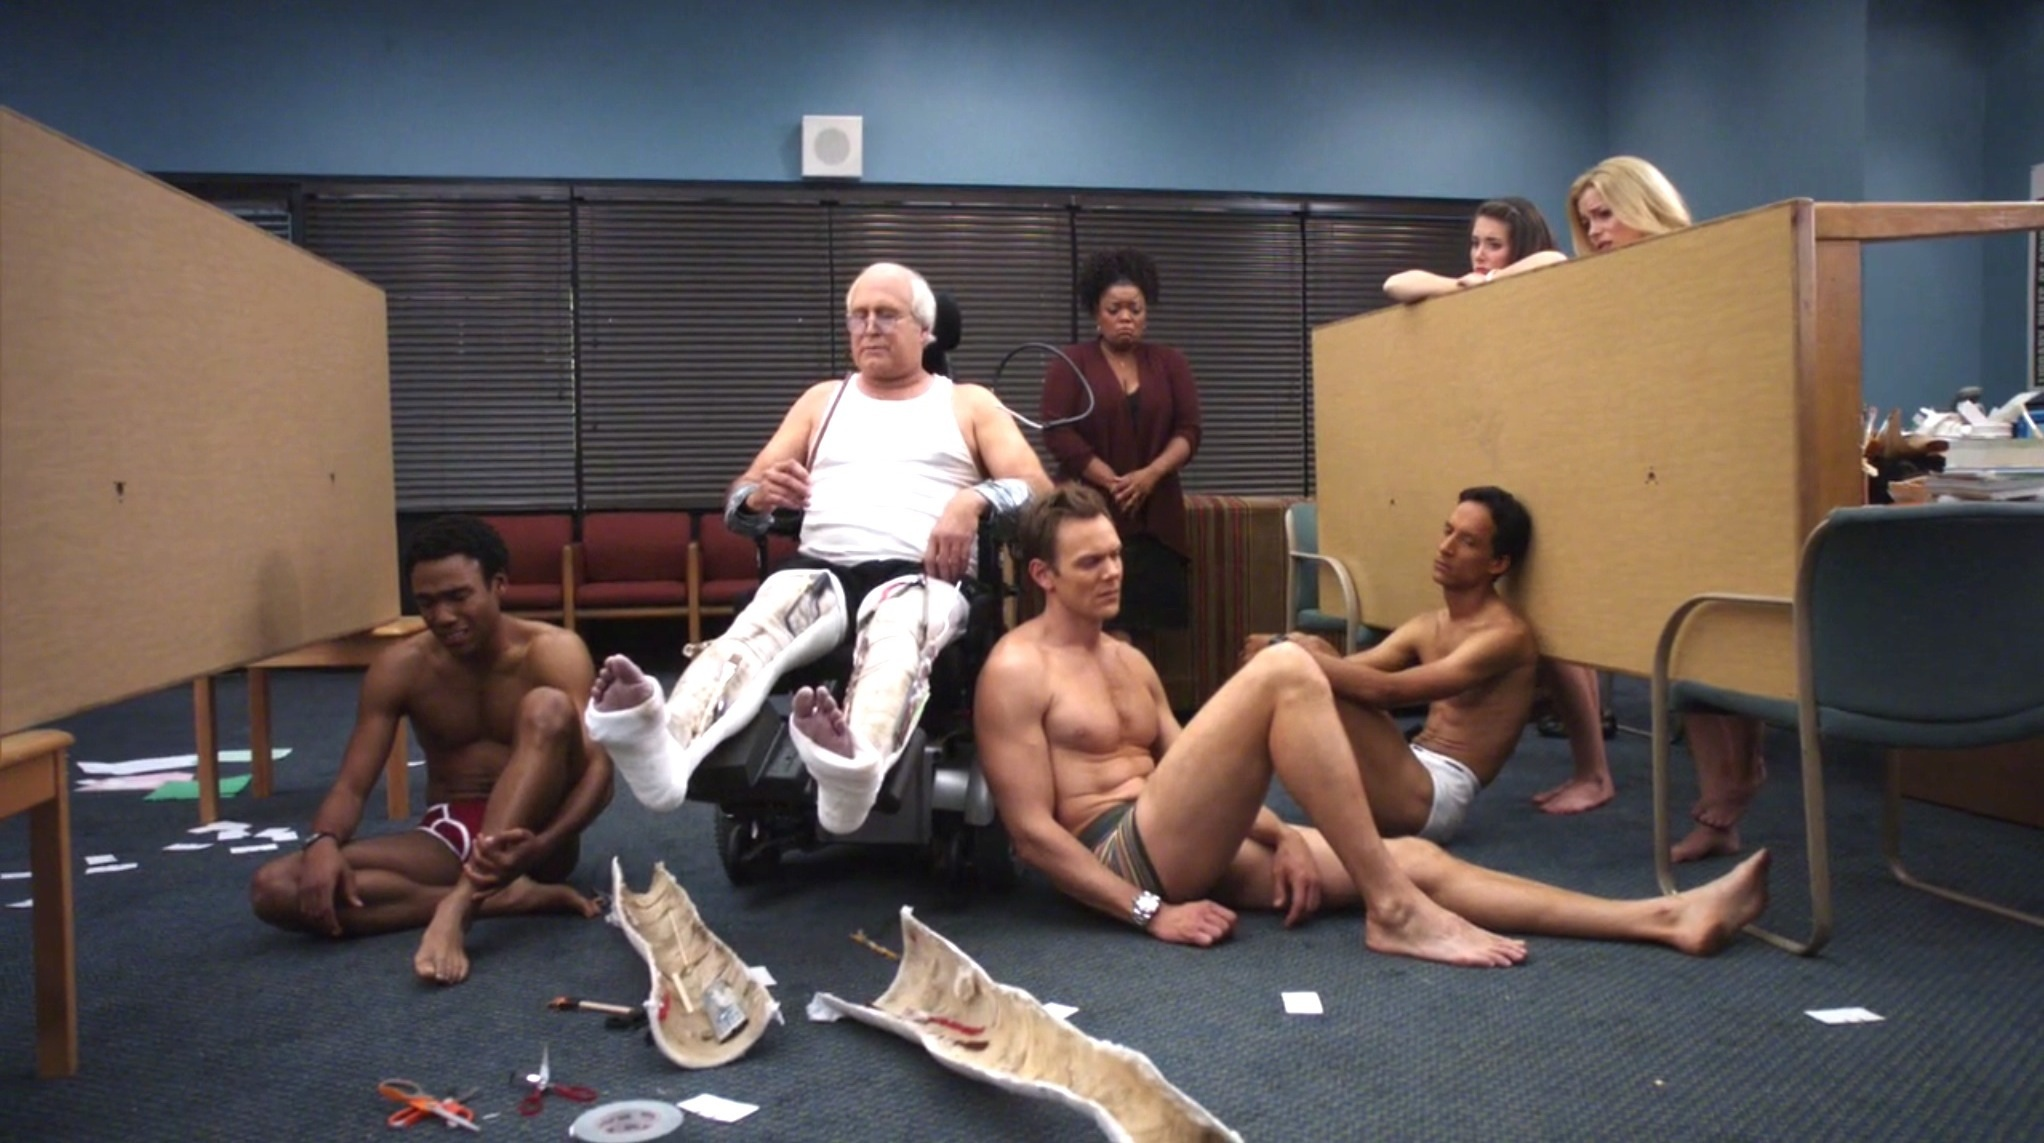 Community Cooperative Caligraphy Advanced Organization of Episodic Installments: The 10 Best Episodes of Community